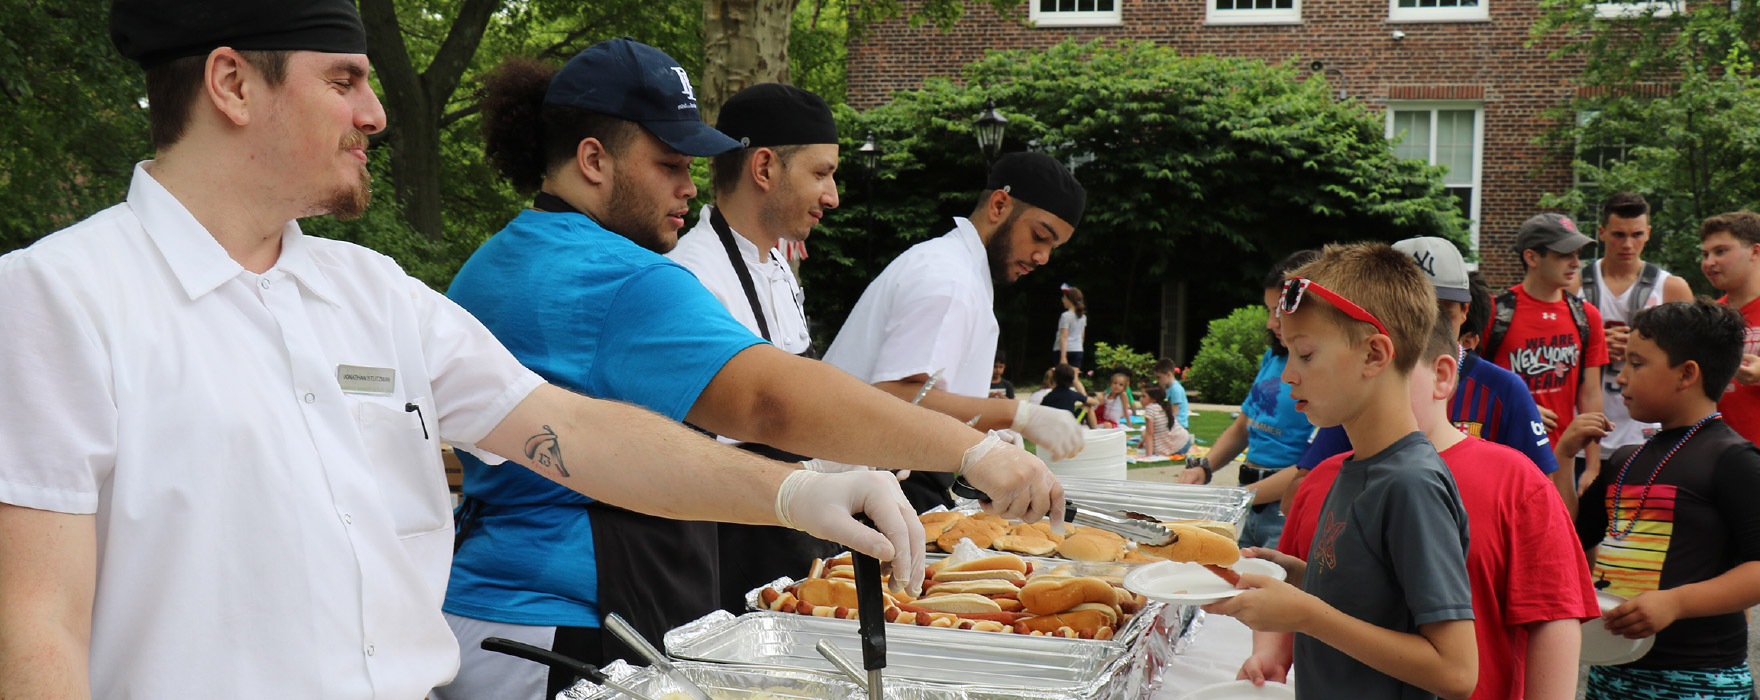 Poly Summer barbecue lunch